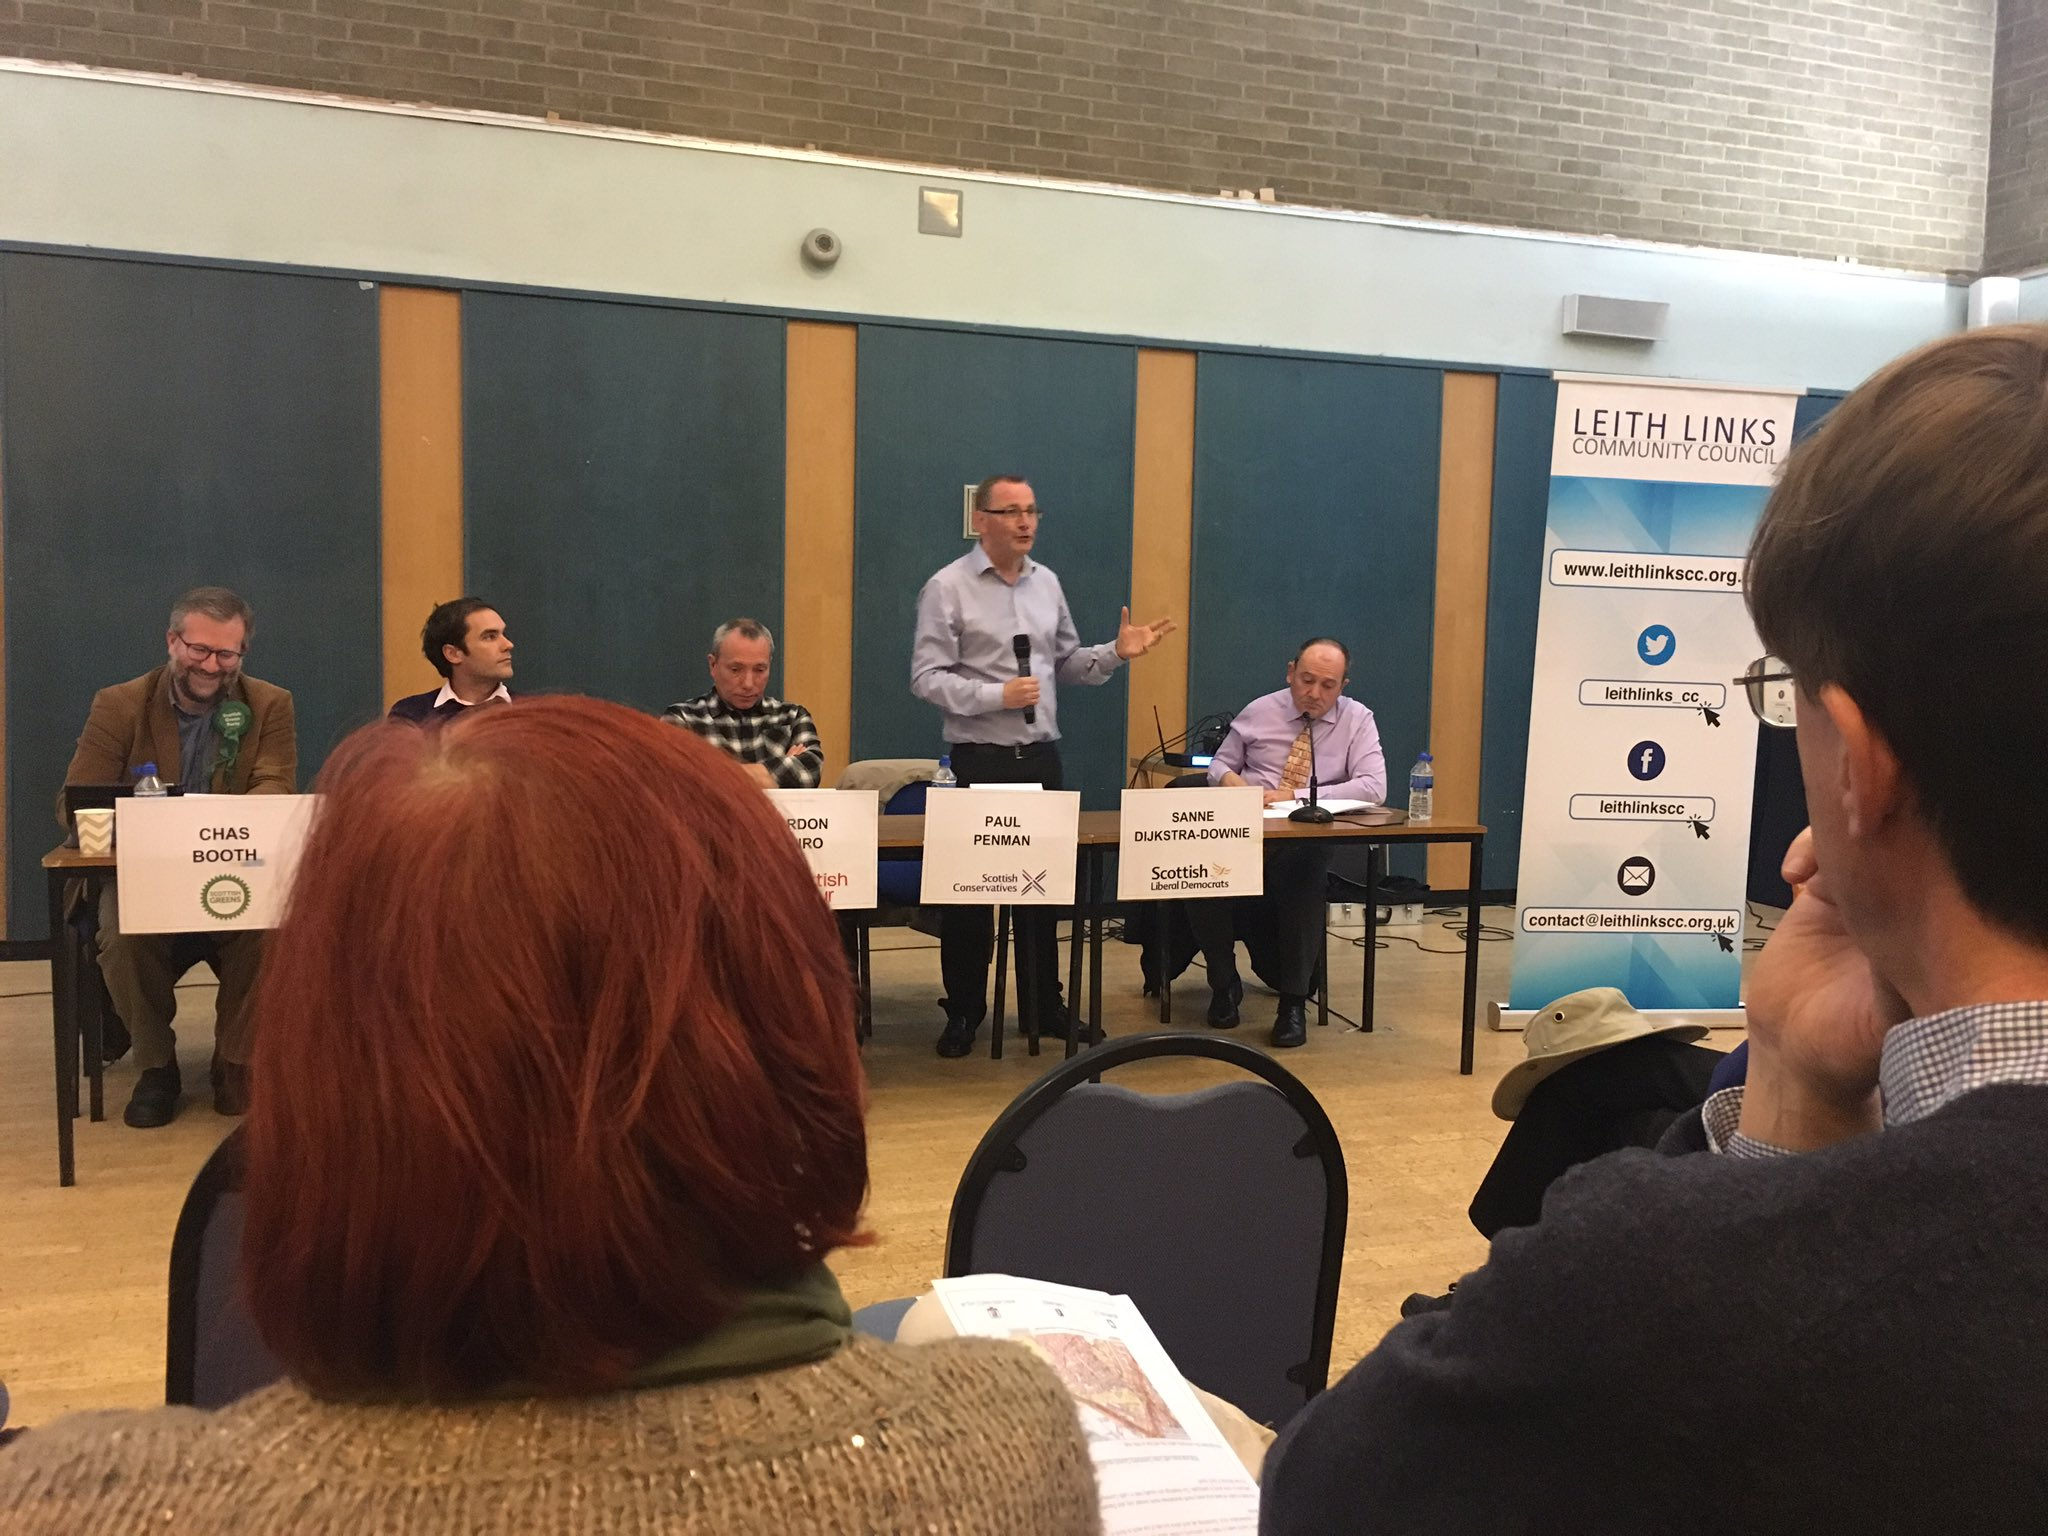 A debut hustings for Paul Penman tonight - he's nailed his introduction - now it's question time - trams up first #LeithHustings https://t.co/FmRi1hC0JV